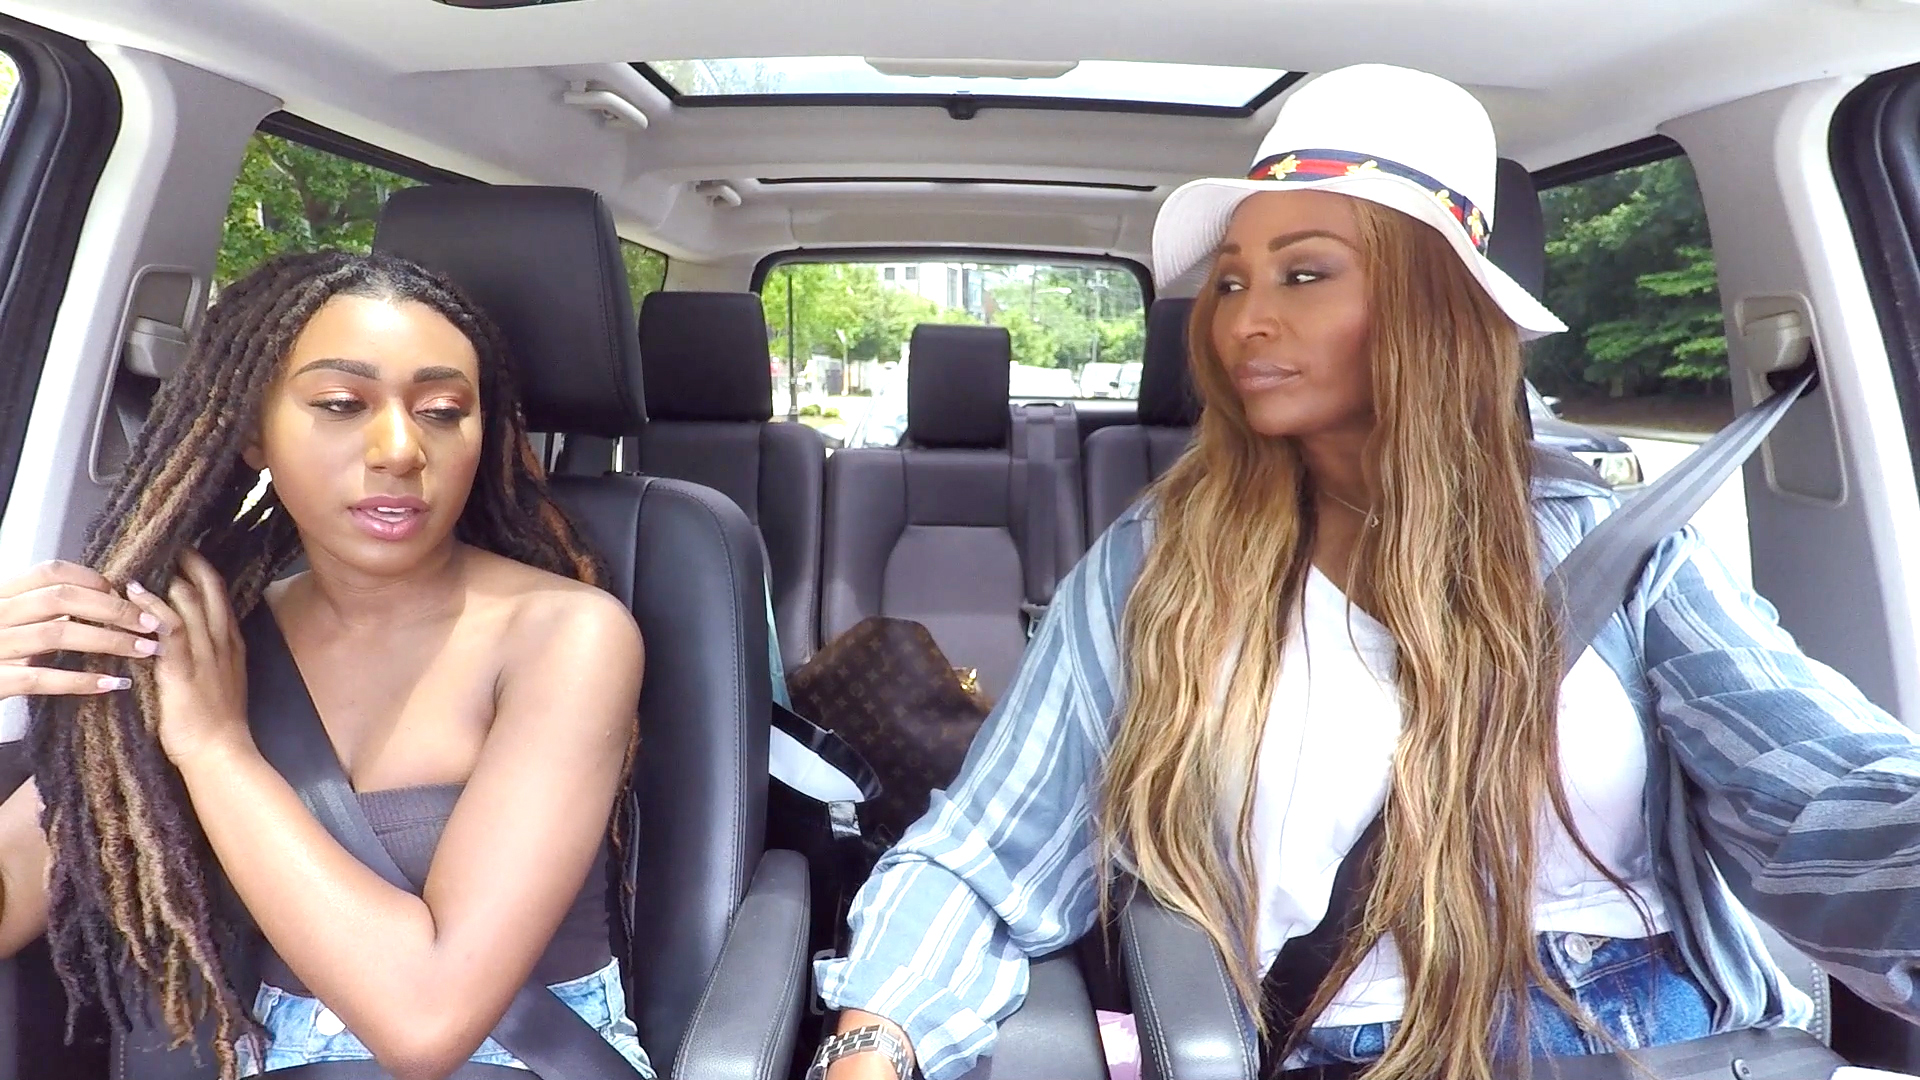 RHOA: Cynthia Bailey's Daughter Noelle Robinson Comes Out As Sexually Fluid